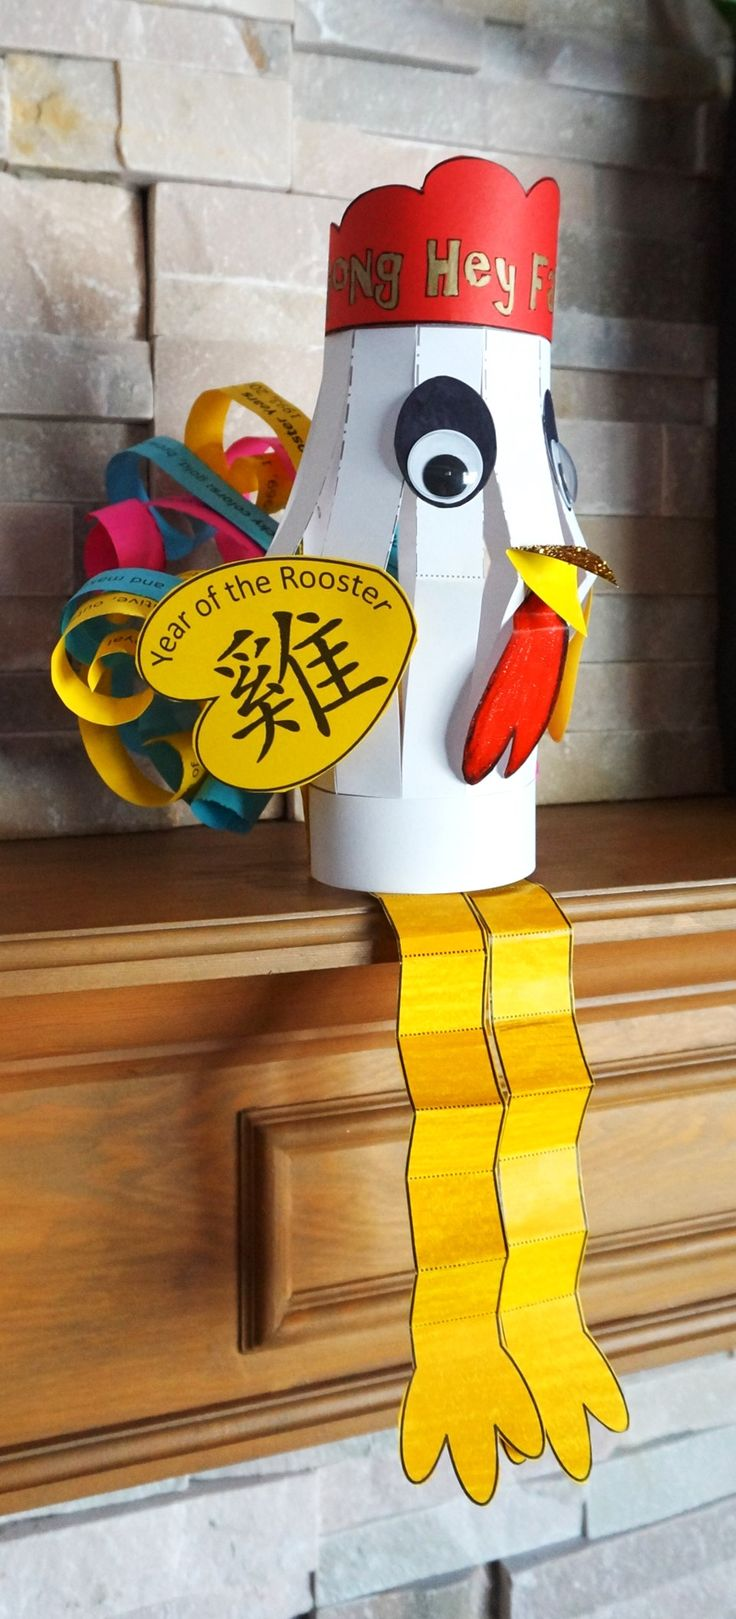 Chinese New Year 2017 :: Year of the Rooster :: Chinese Lantern Craft. Decorate your classroom for Chinese New Year on January 28th, 2017. Chinese Roosters Lanterns hanging from the ceiling or sitting on the shelf, your kiddos will love creating n these Chinese lanterns - more at megacutie.co.uk